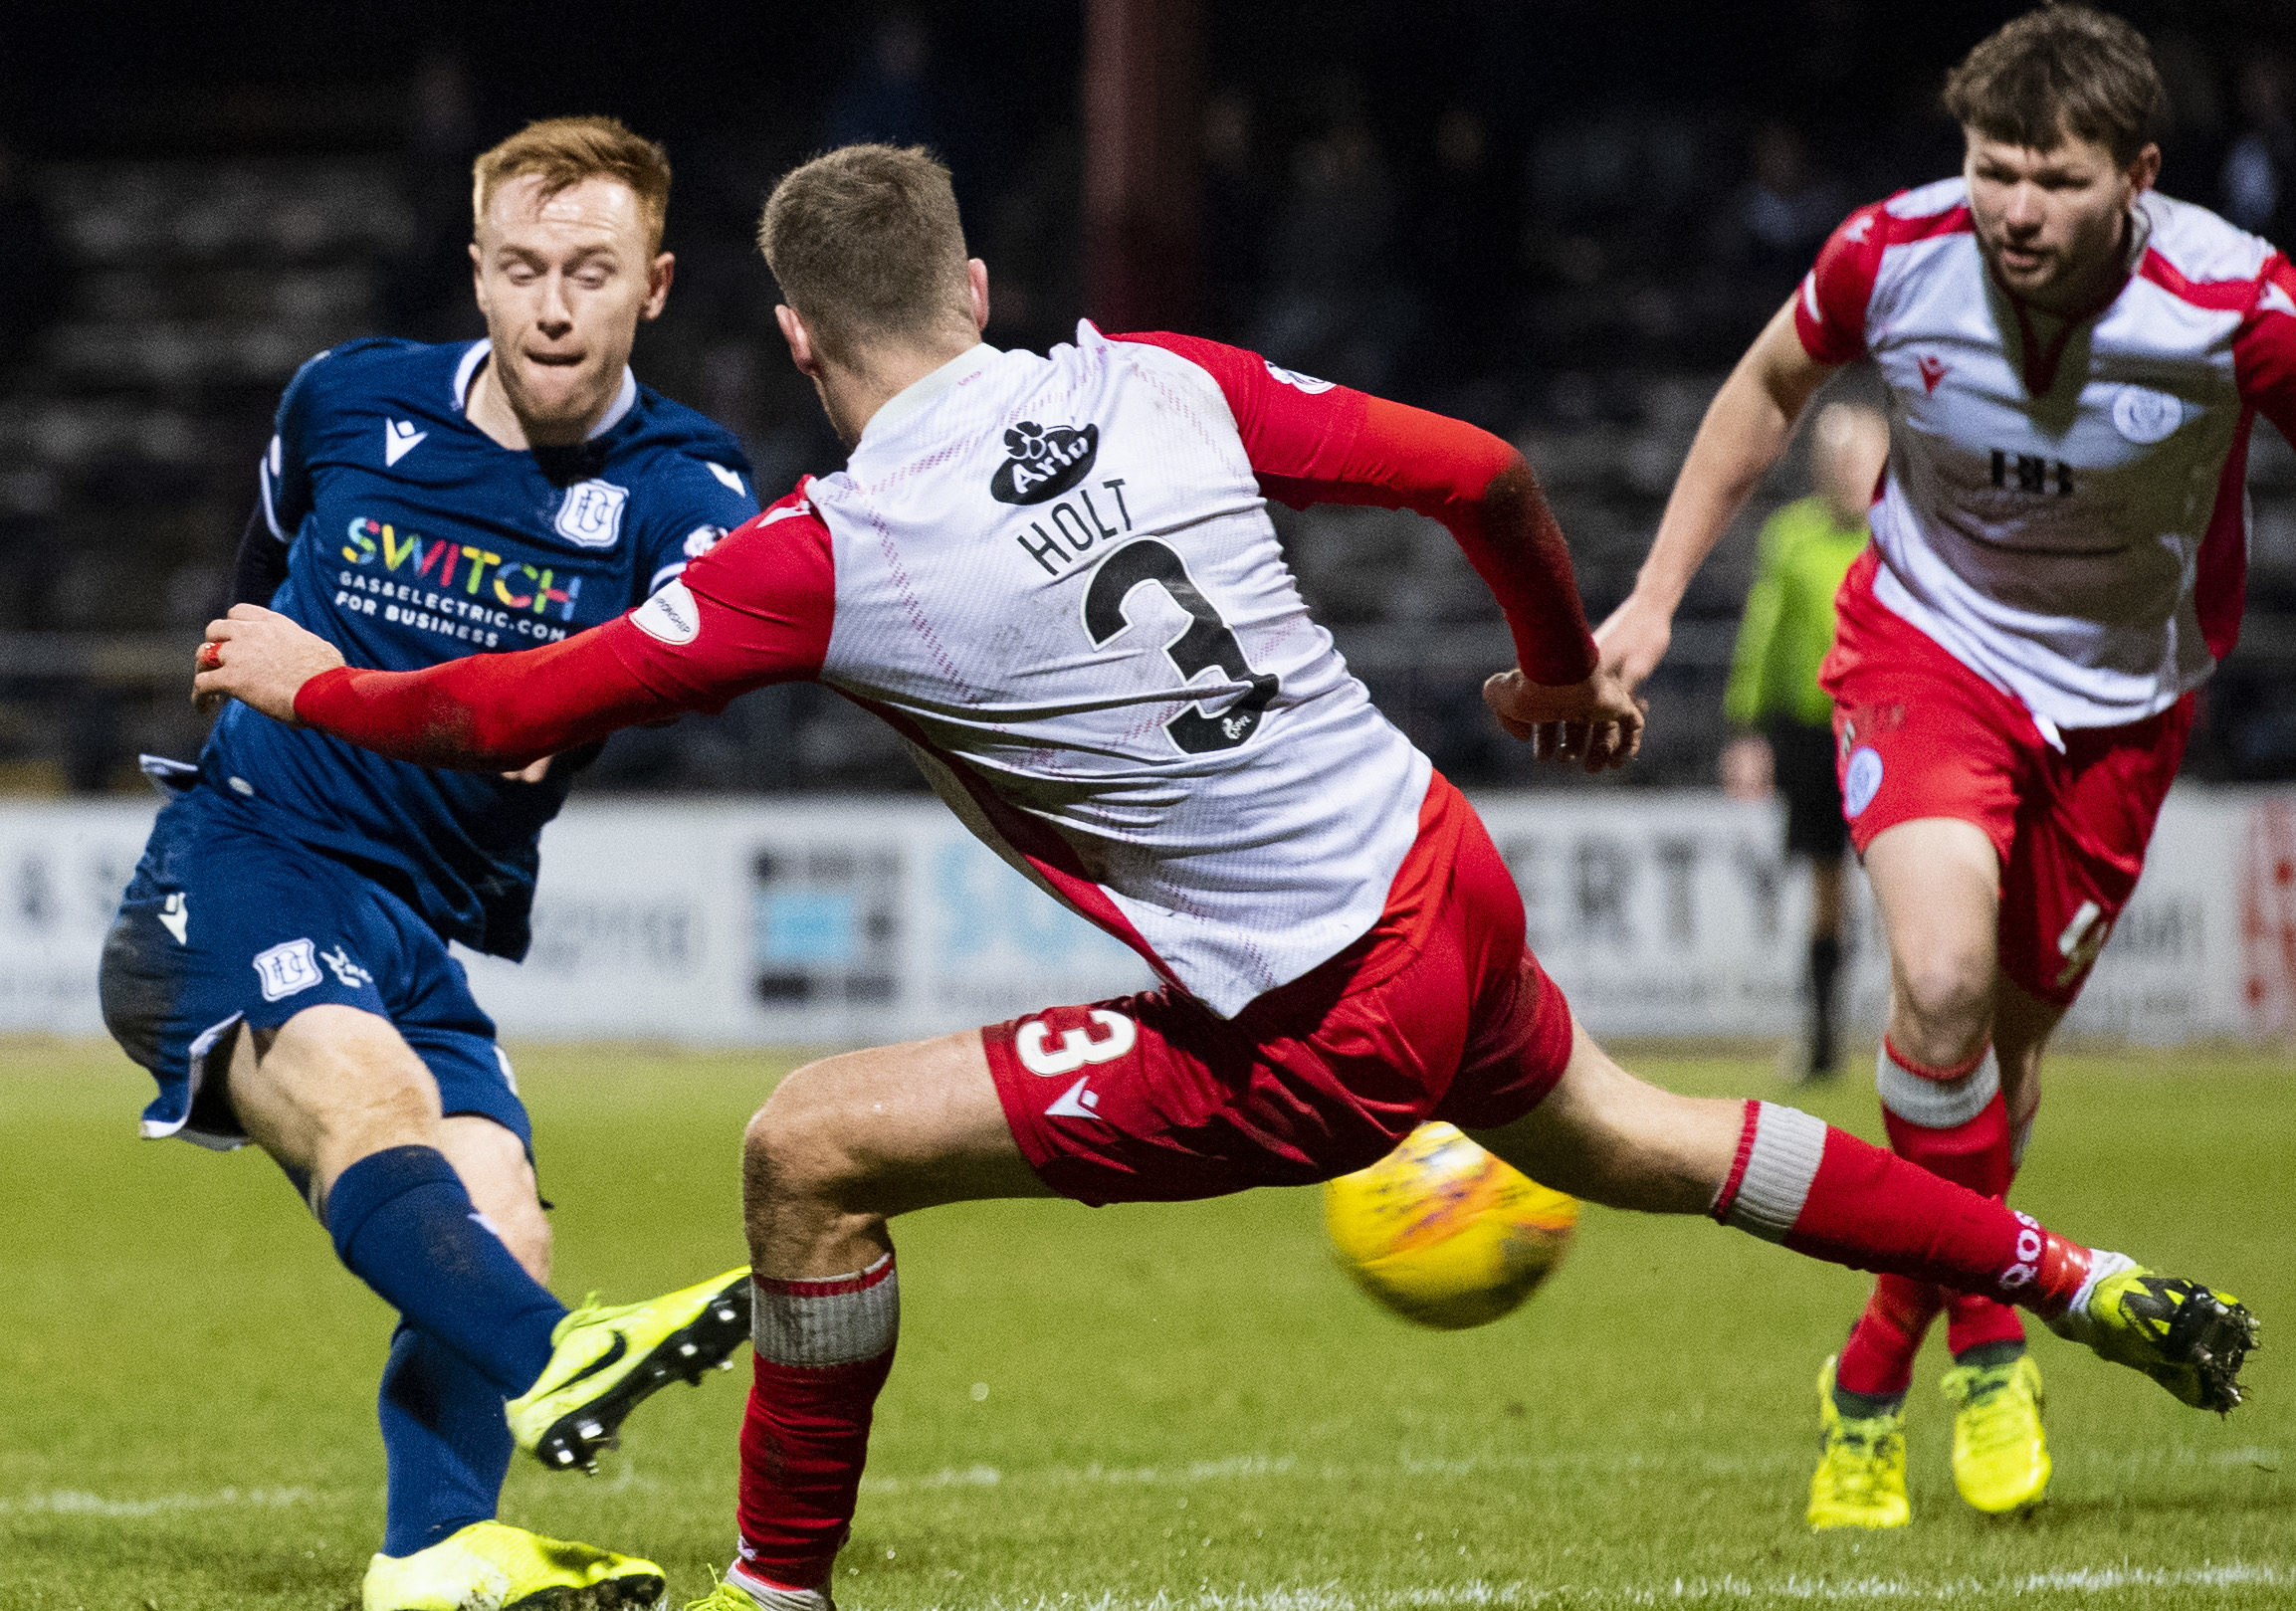 Dundee's Danny Johnson scores to make it 1-1.